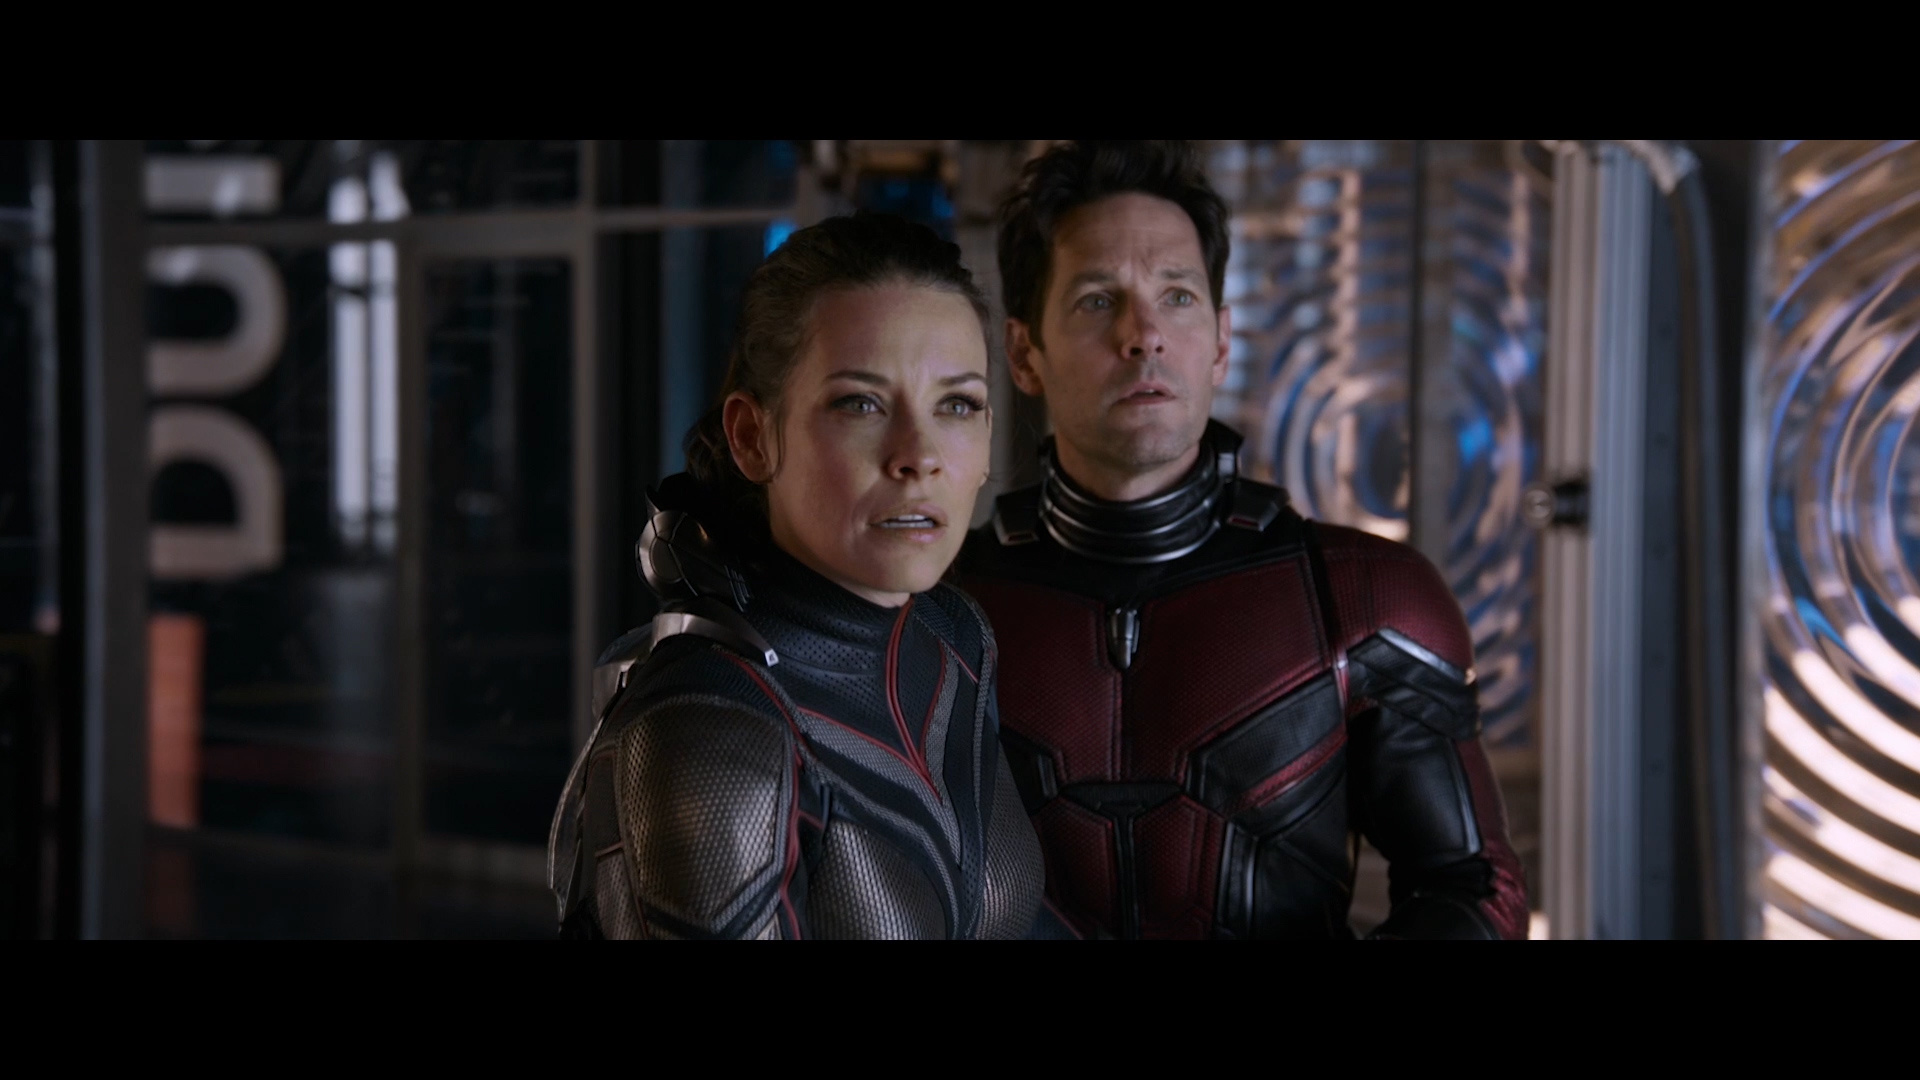 Image Media for Ant-Man & The Wasp - Bonus Trailer